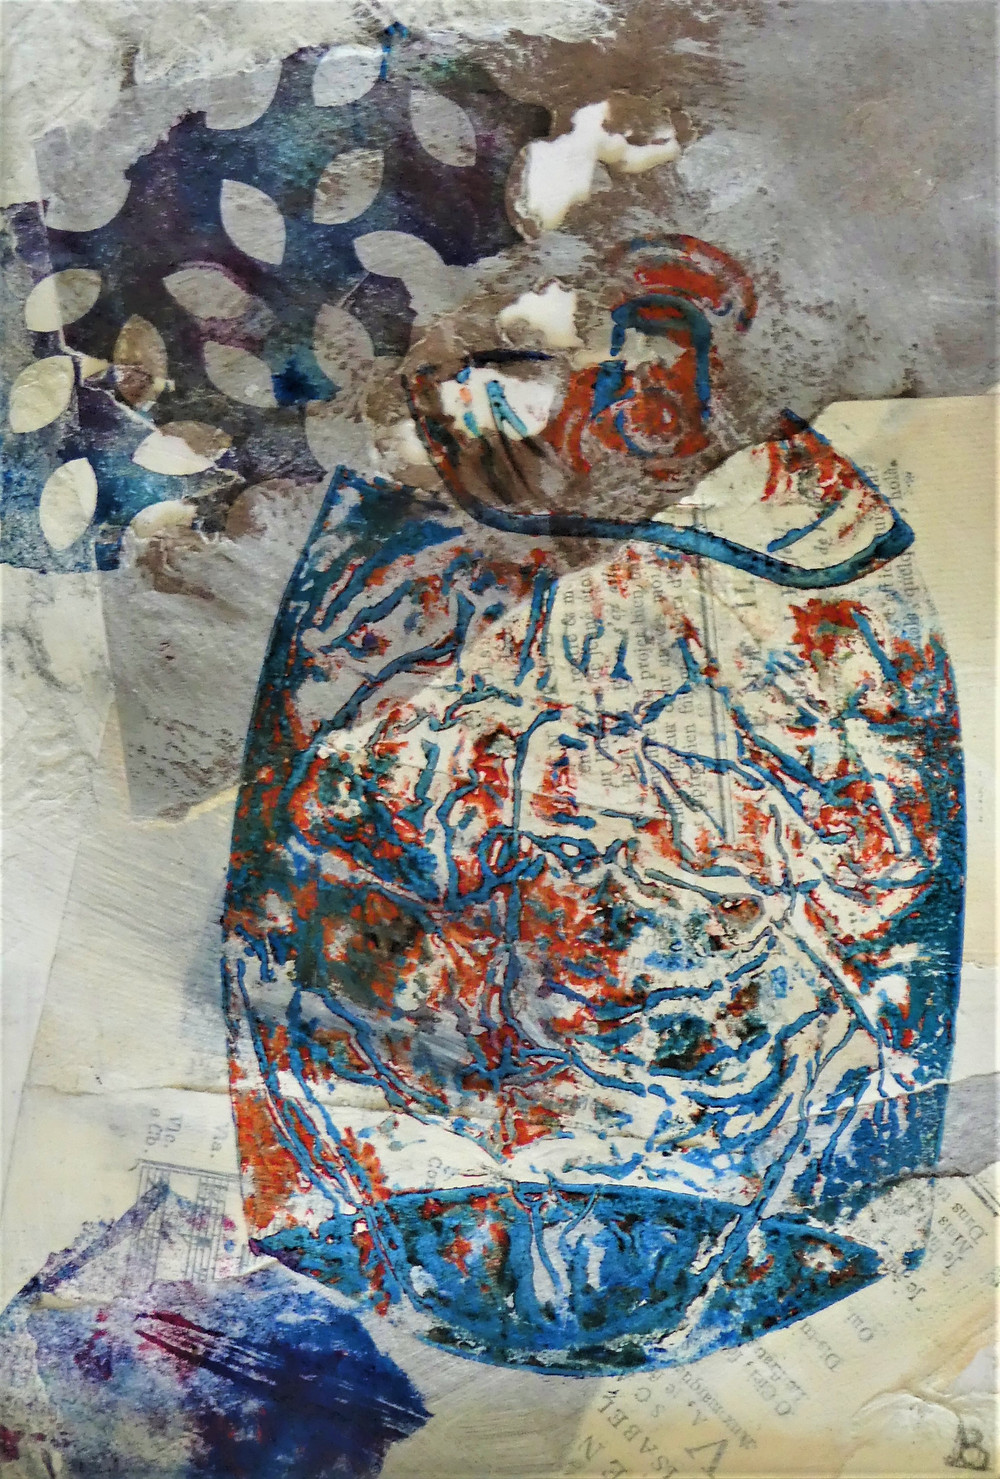 Trashed Can 2  mixed media artwork hand-pulled print with found objects including a can, a leaf, gauze and some papter